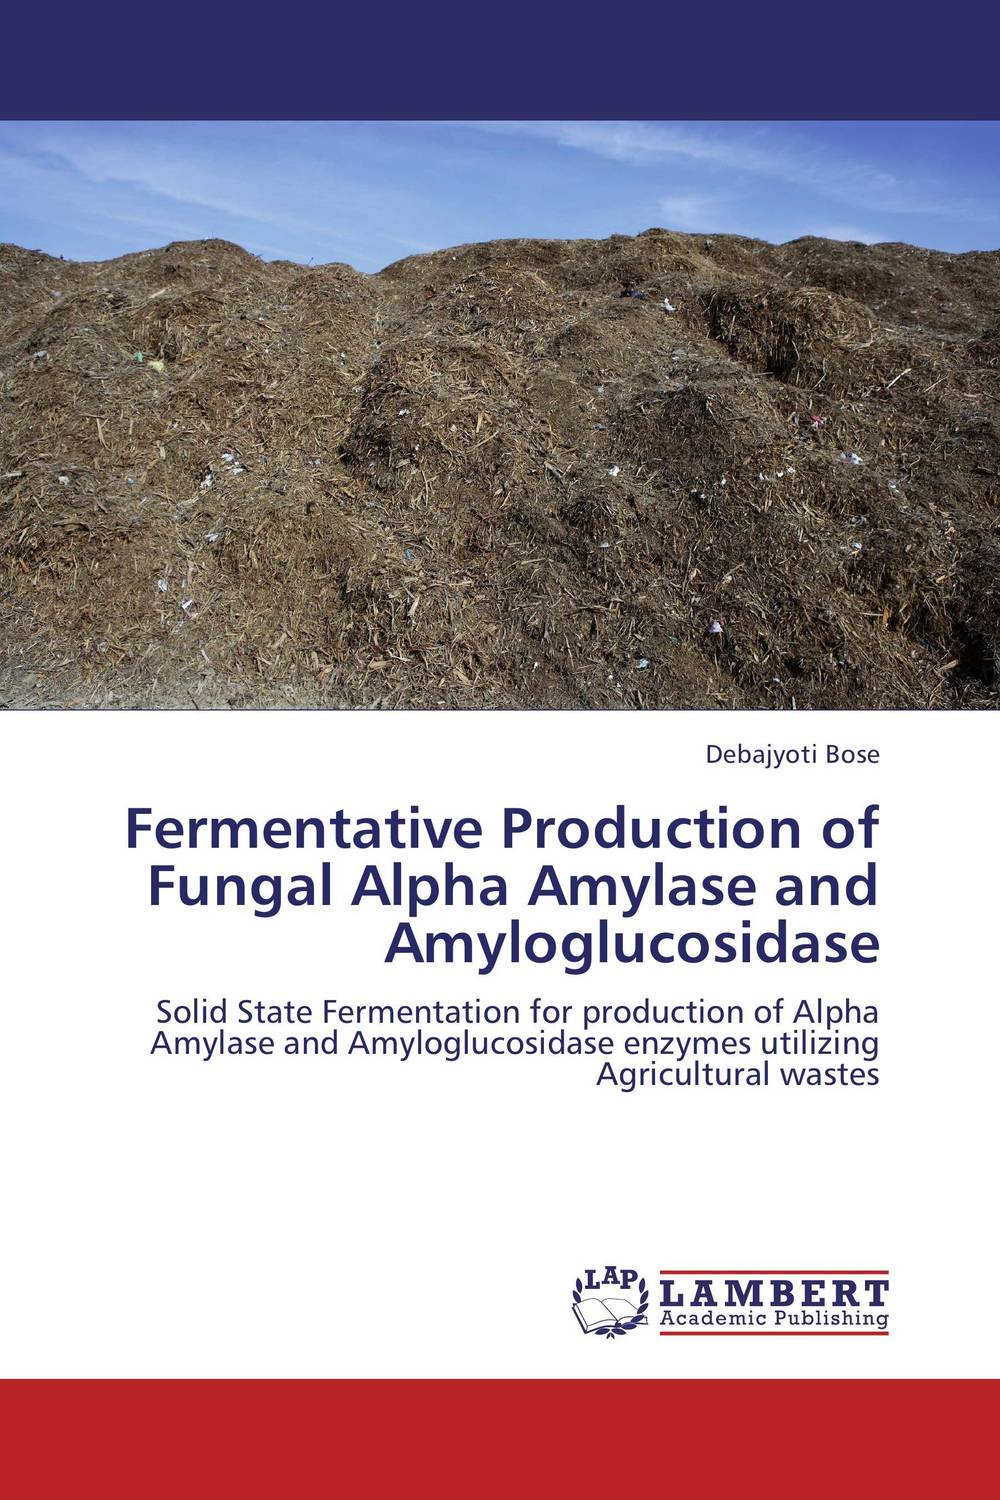 Fermentative Production of Fungal Alpha Amylase and Amyloglucosidase купить